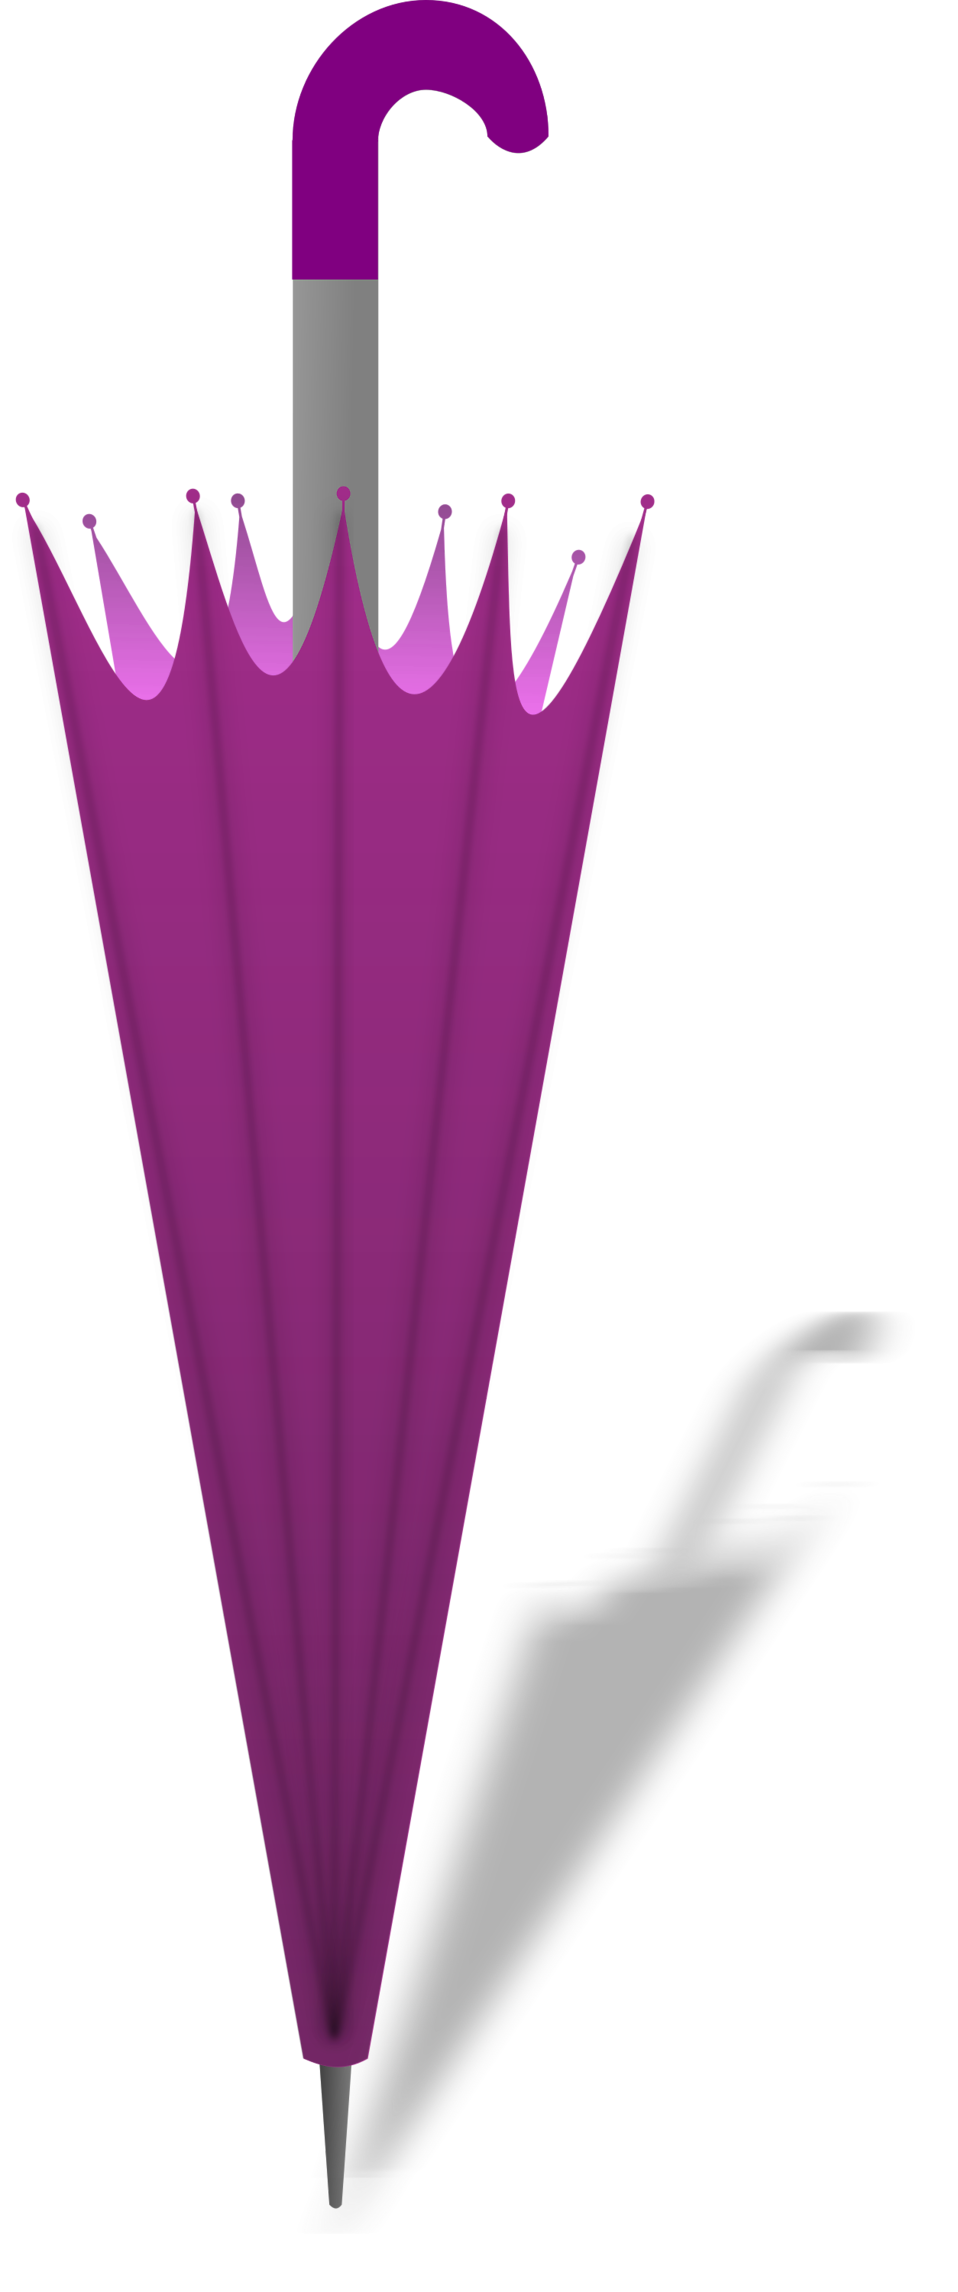 Illustration of a purple umbrella : Free Stock Photo